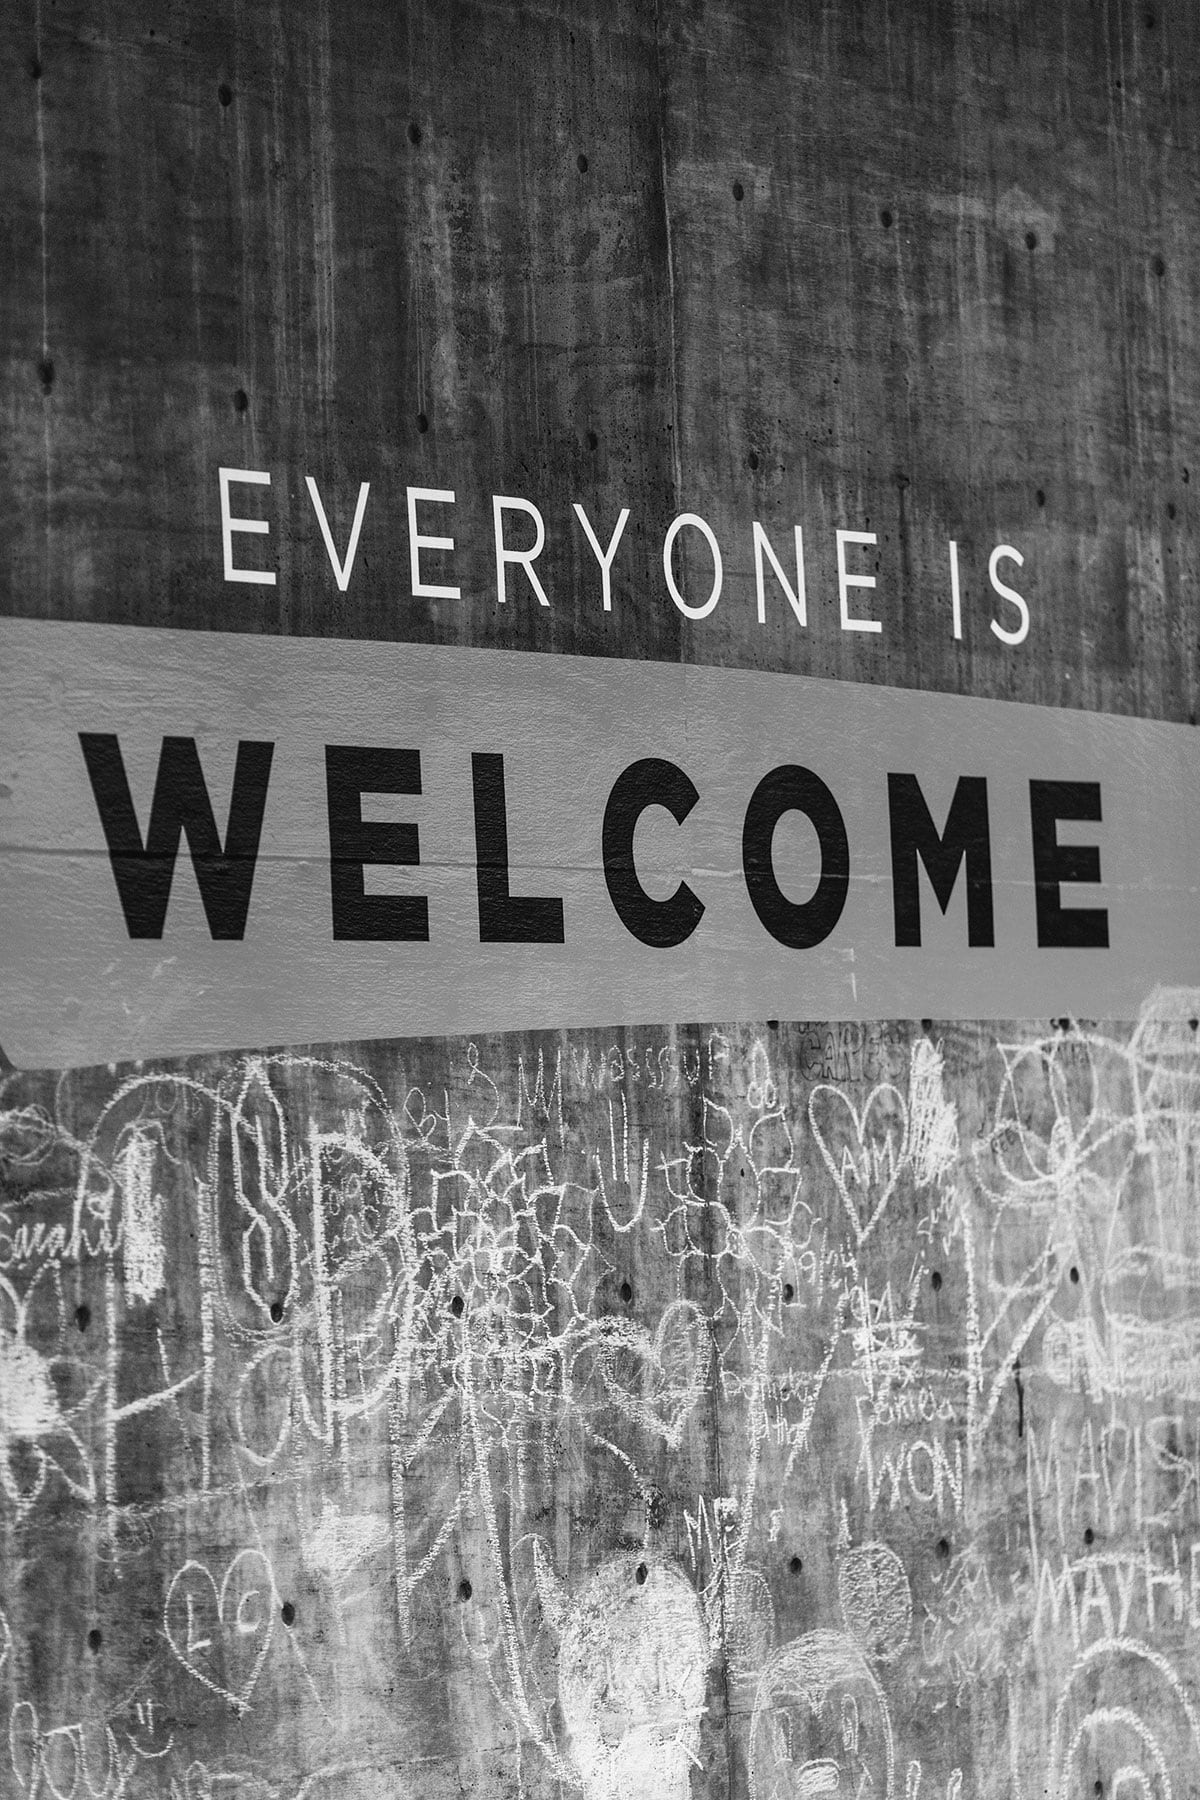 All-are-welcome.jpg